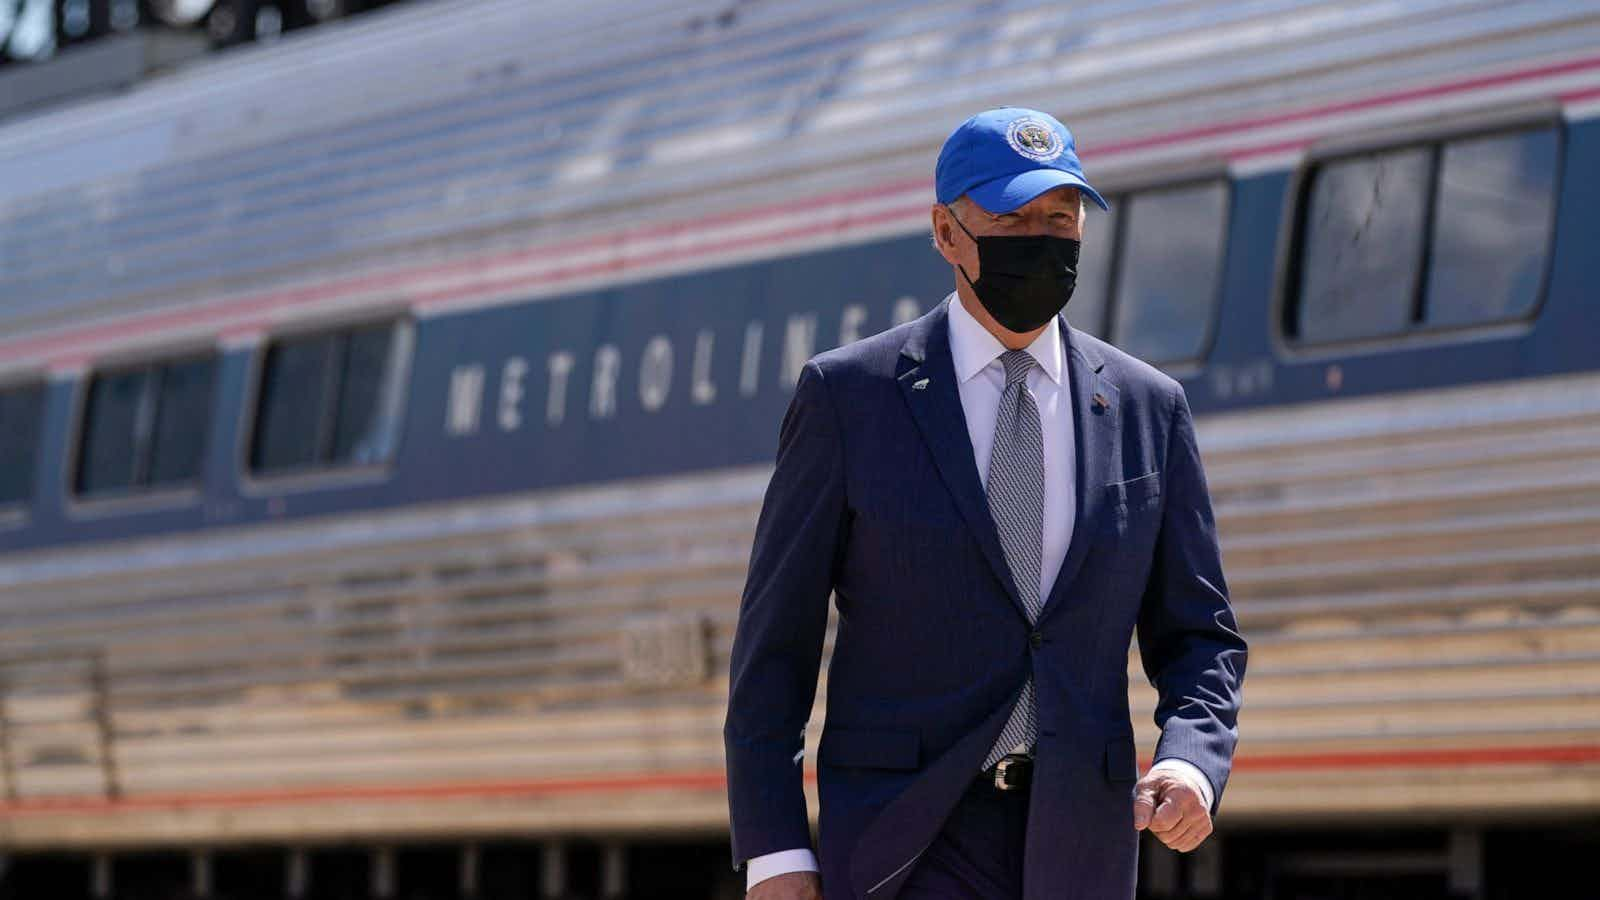 Advisers tell Biden to still wear masks outside to encourage public to follow suit